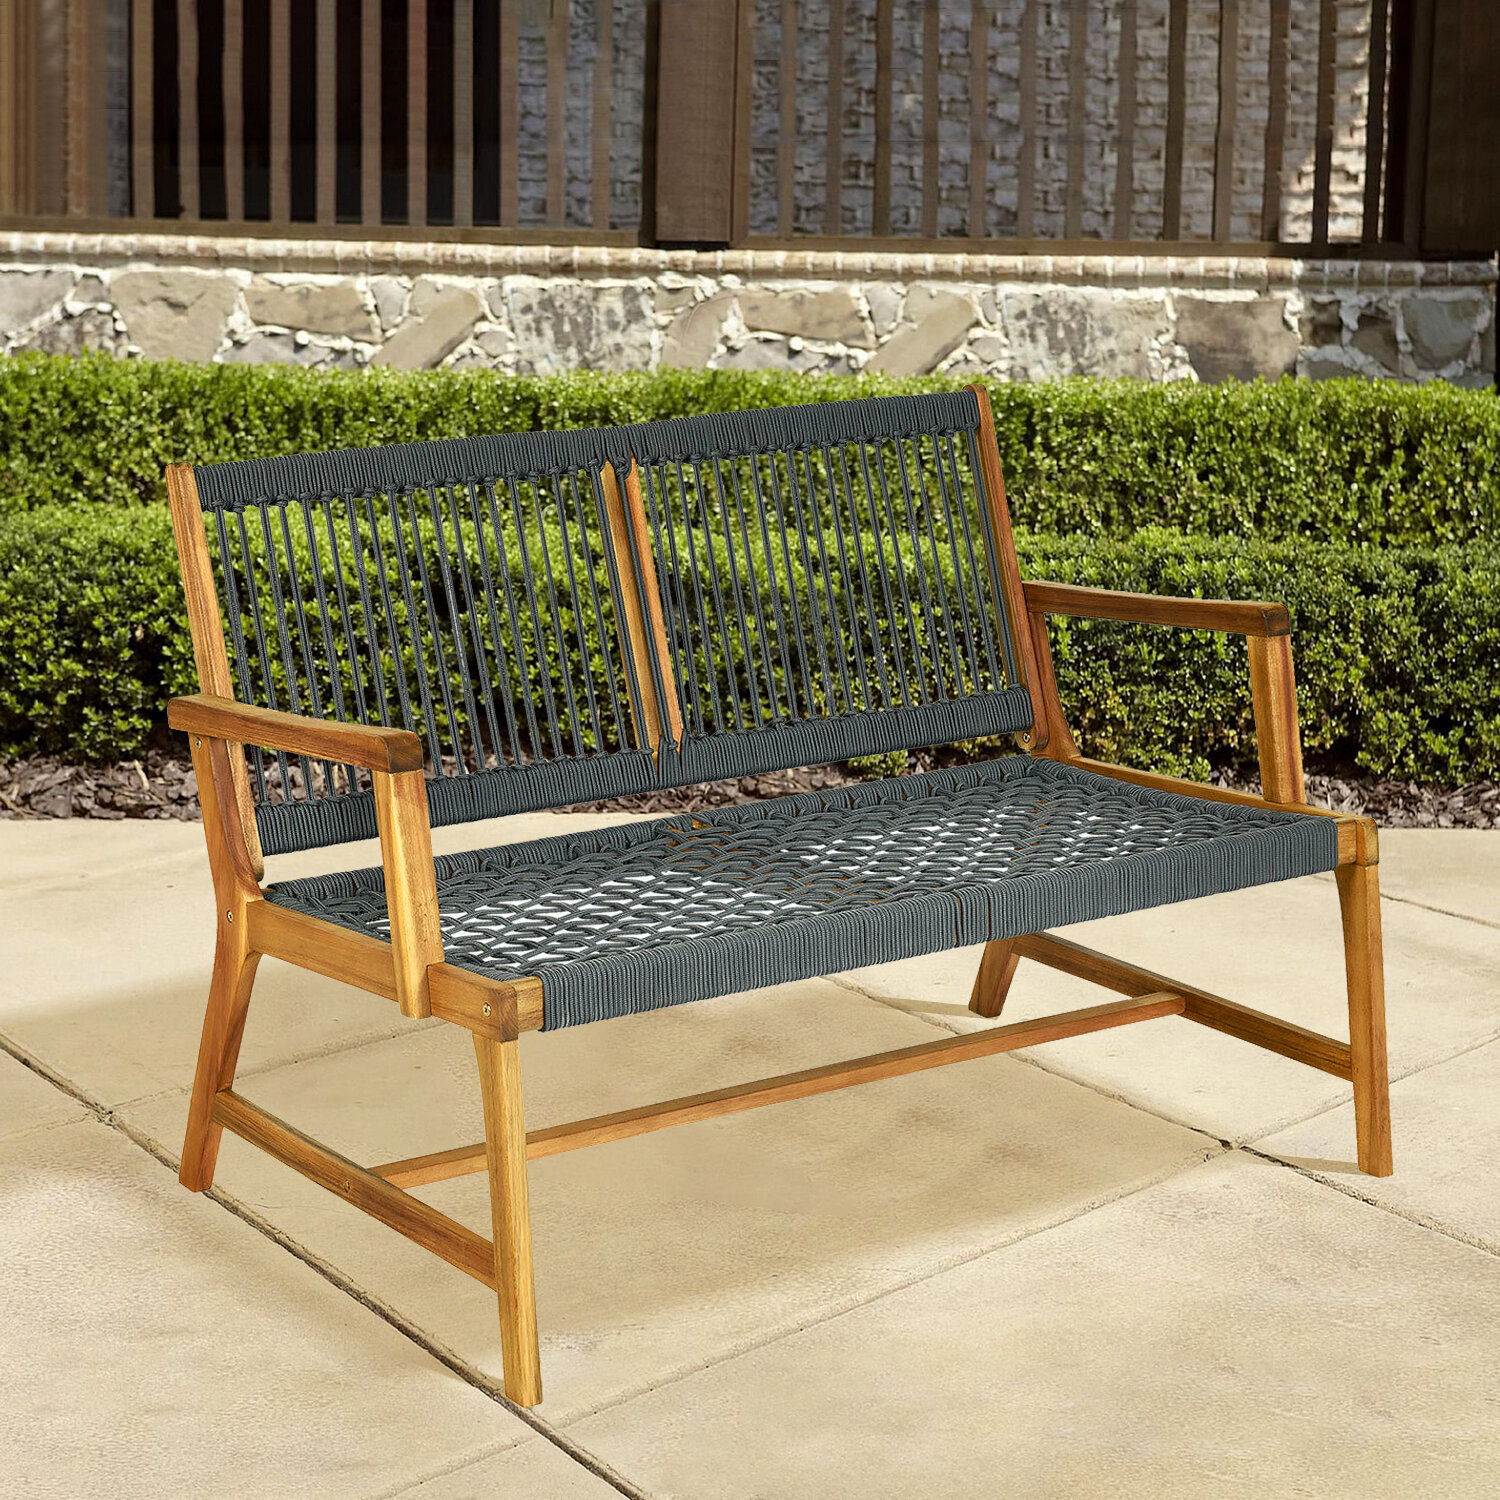 Tabiona Wooden Garden Bench For Ahana Wooden Garden Benches (View 8 of 25)